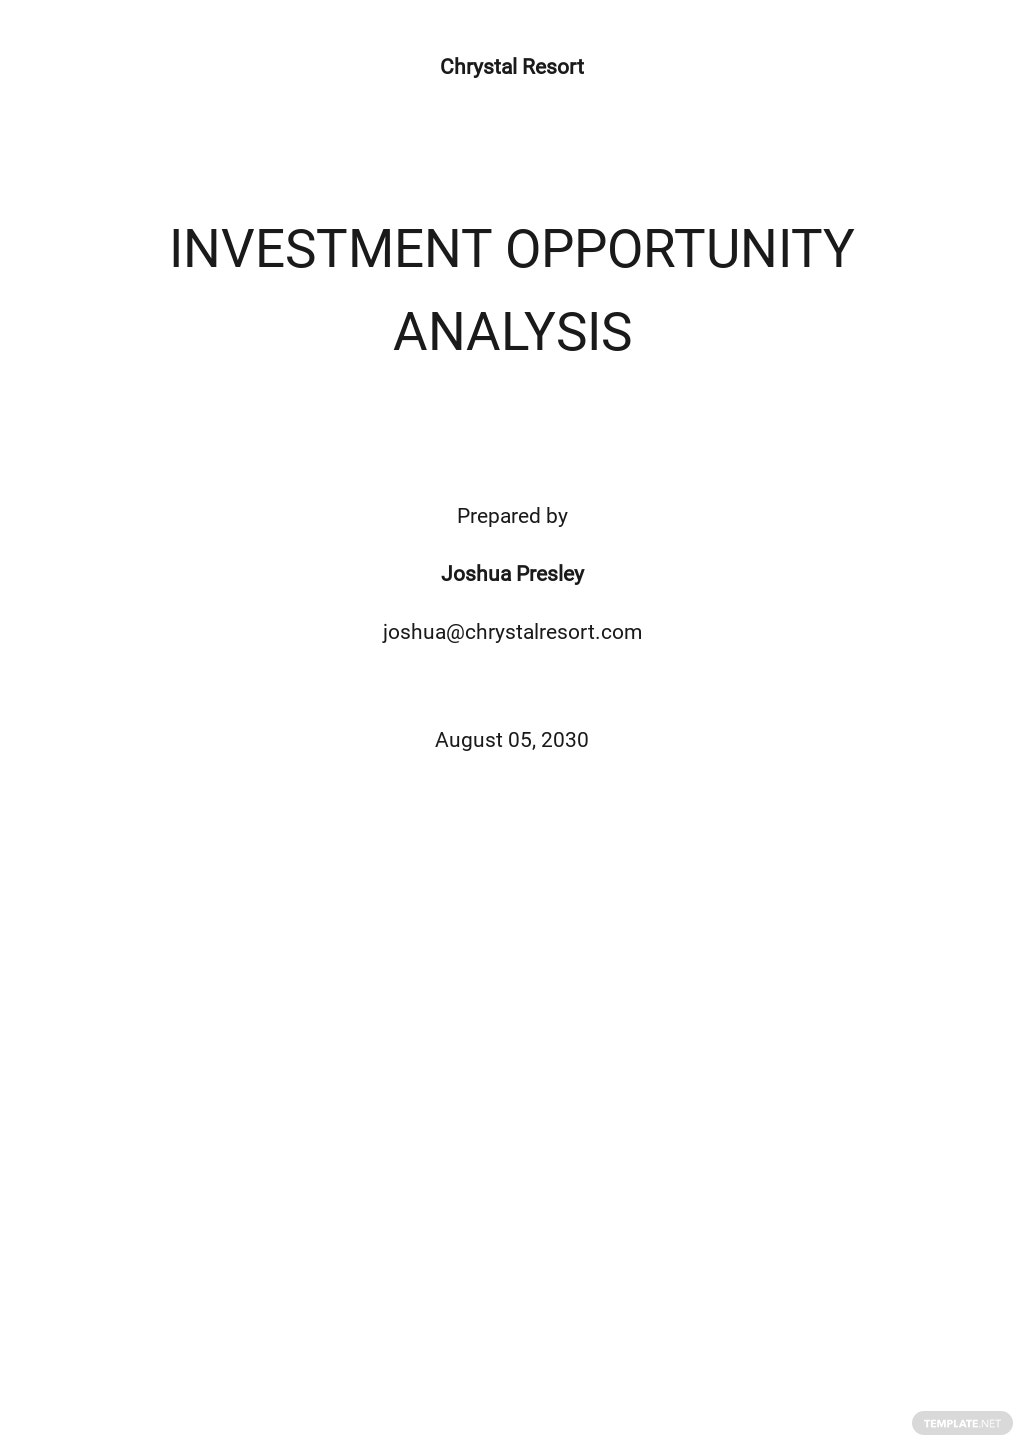 Investment Opportunity Analysis Template